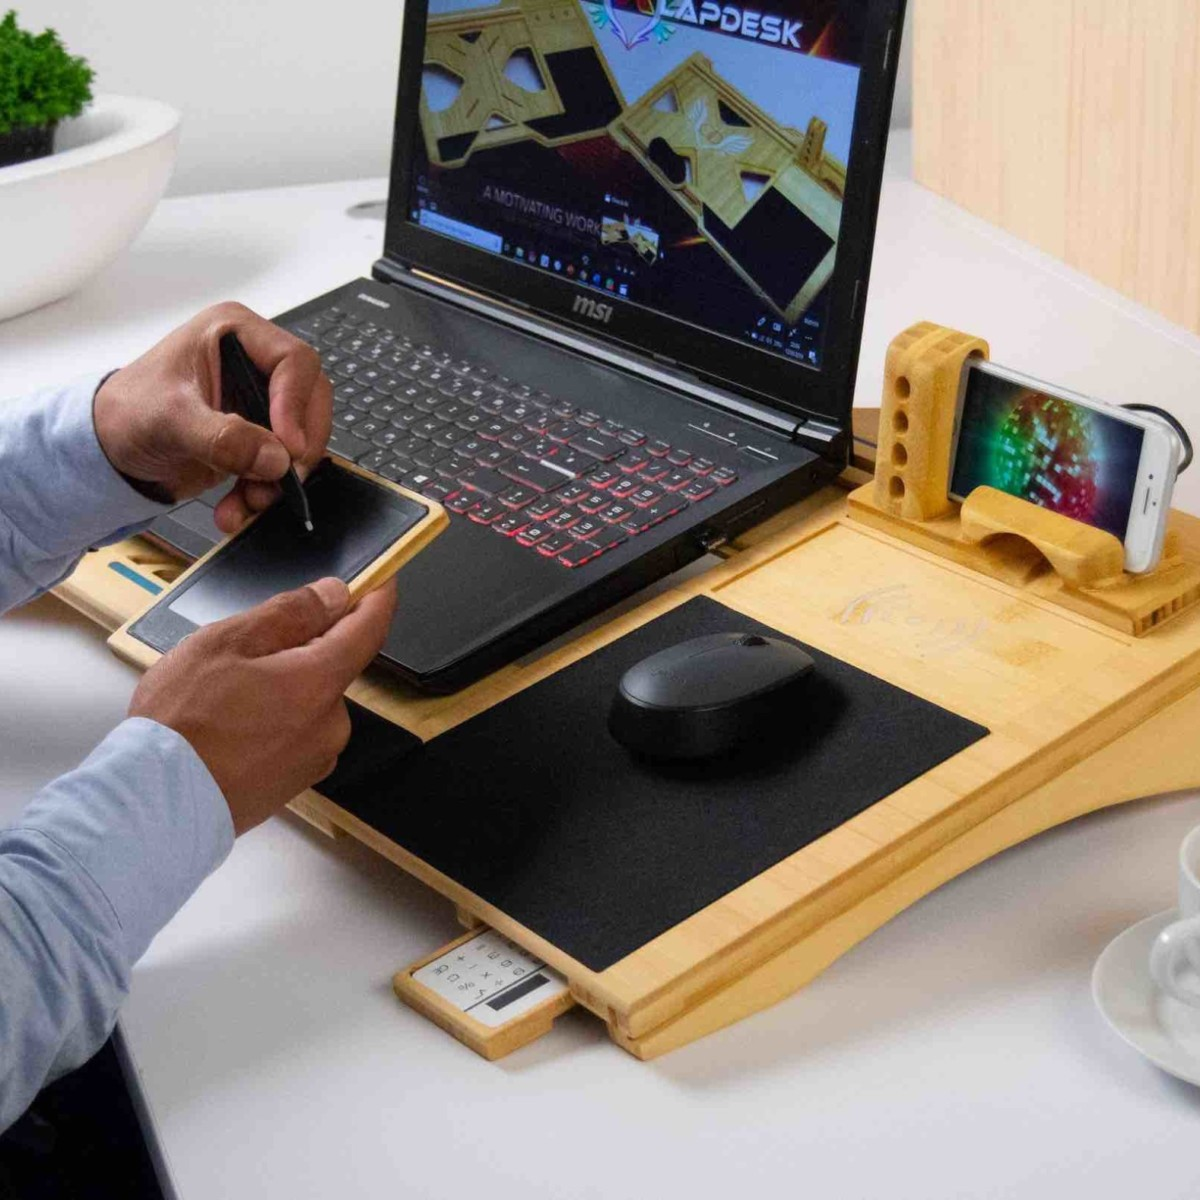 X LapDesk Multifunctional Lap Desk Workstation is all about convenience